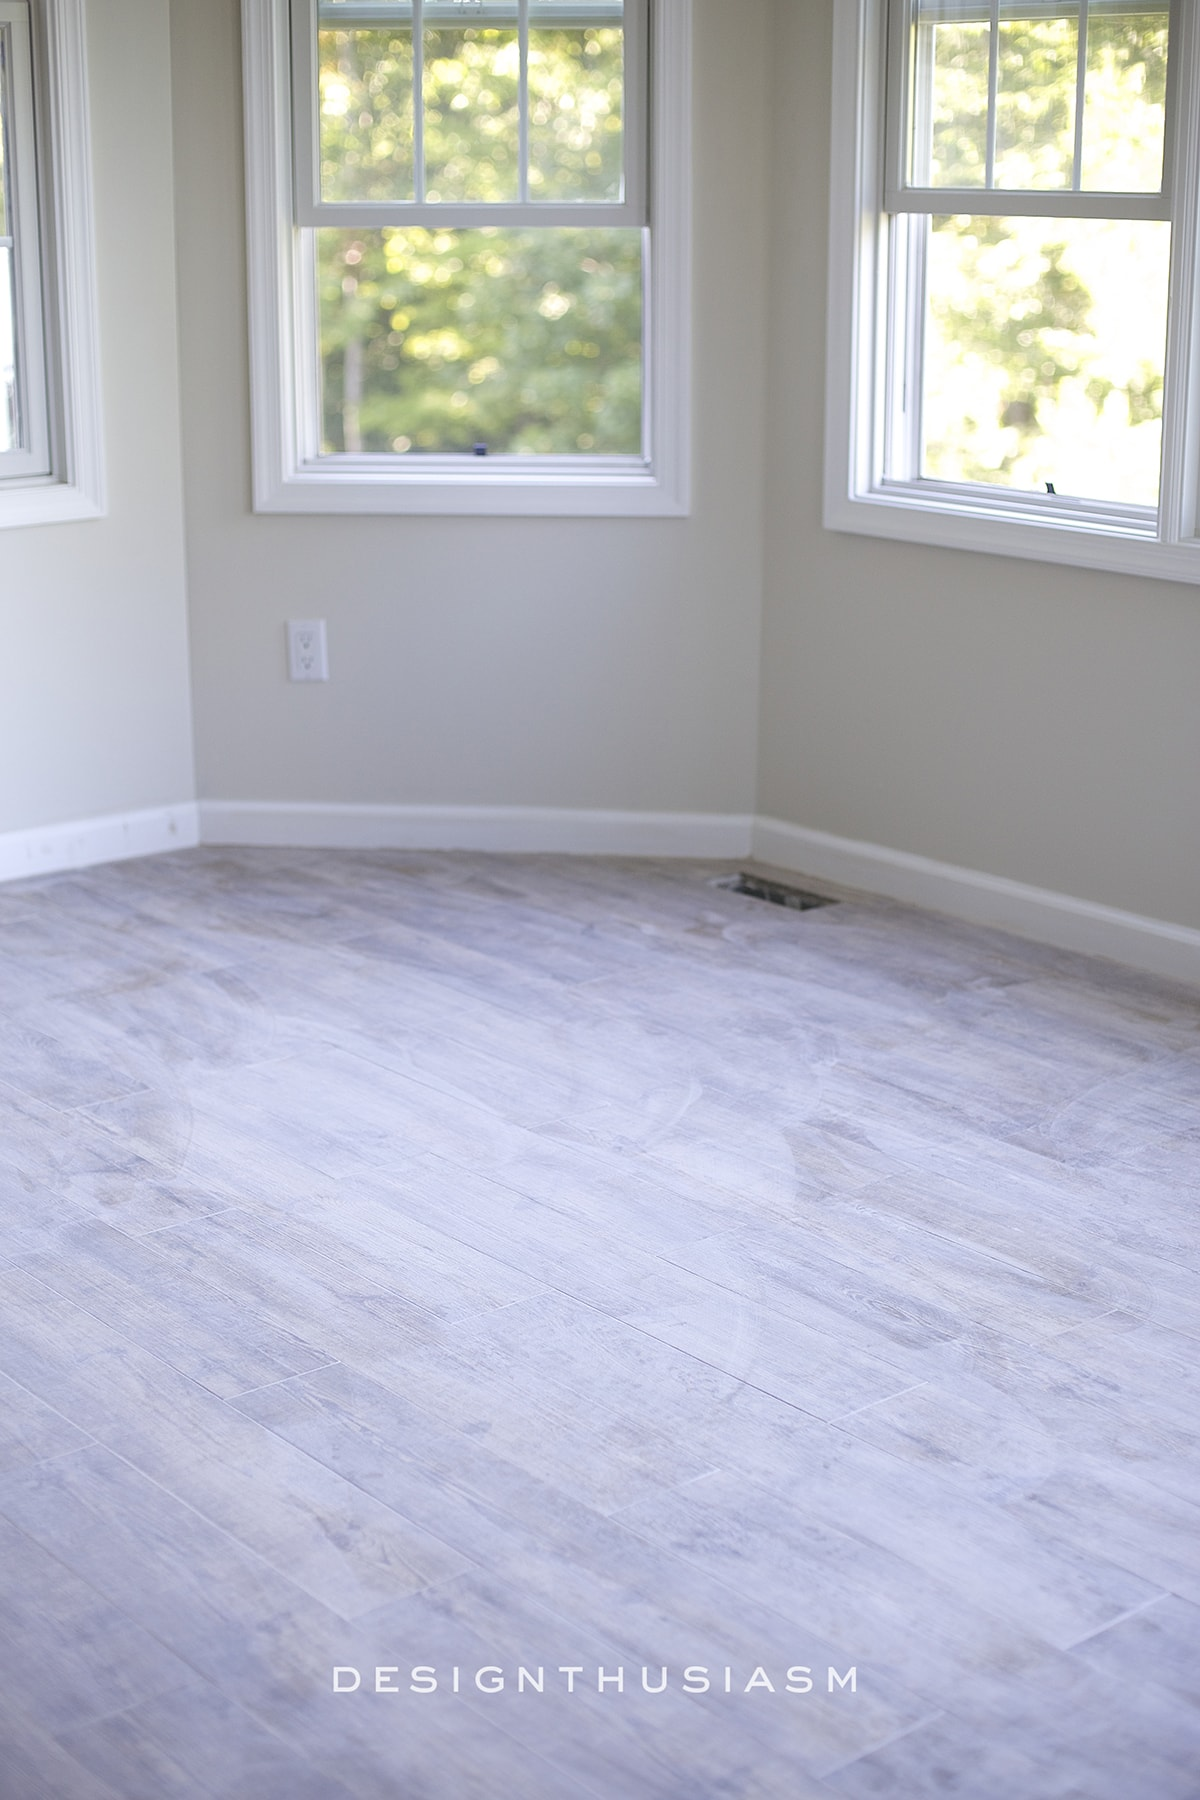 Faux Wood Flooring Grey And White Laminate Hardwood